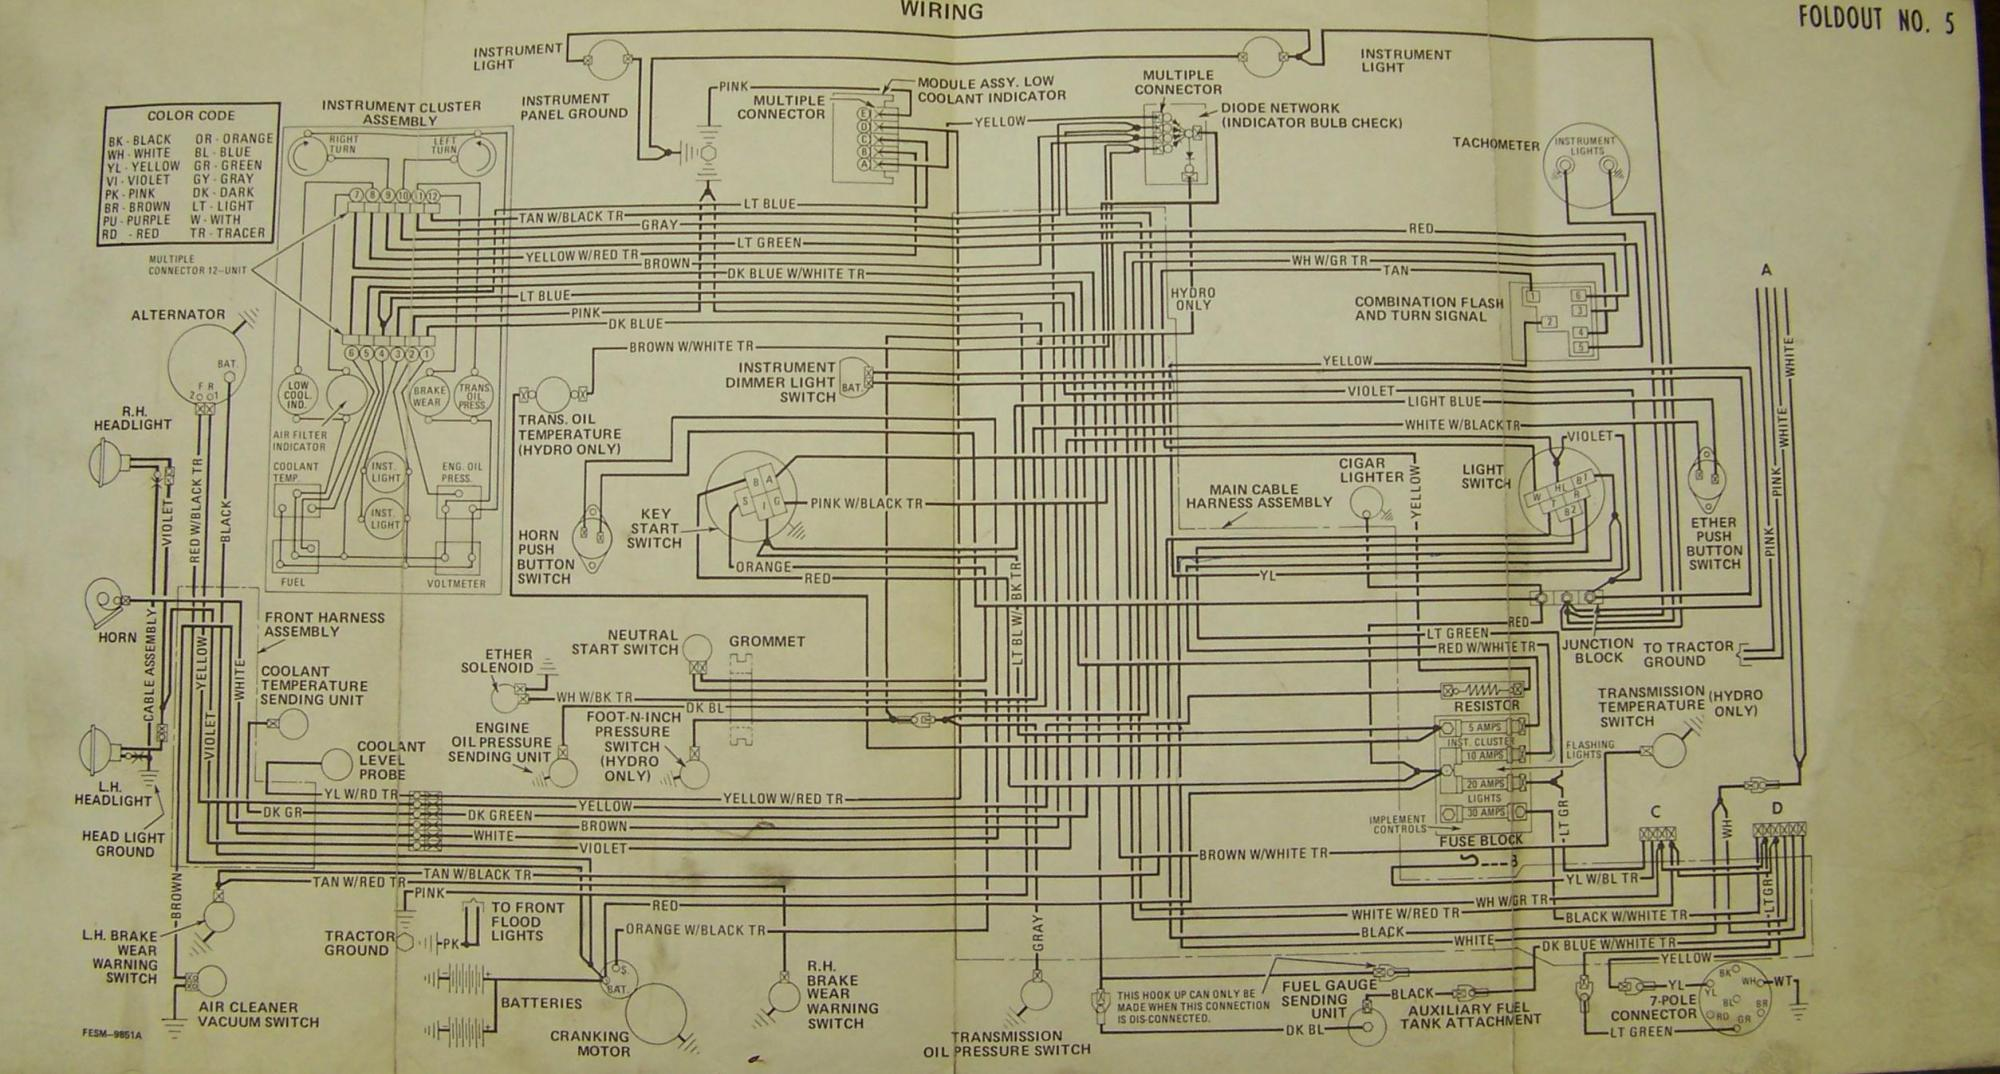 hight resolution of carter gruenewald co inc ih farmall tractor electrical wiring ih 706 wiring diagram ih 706 wiring diagram